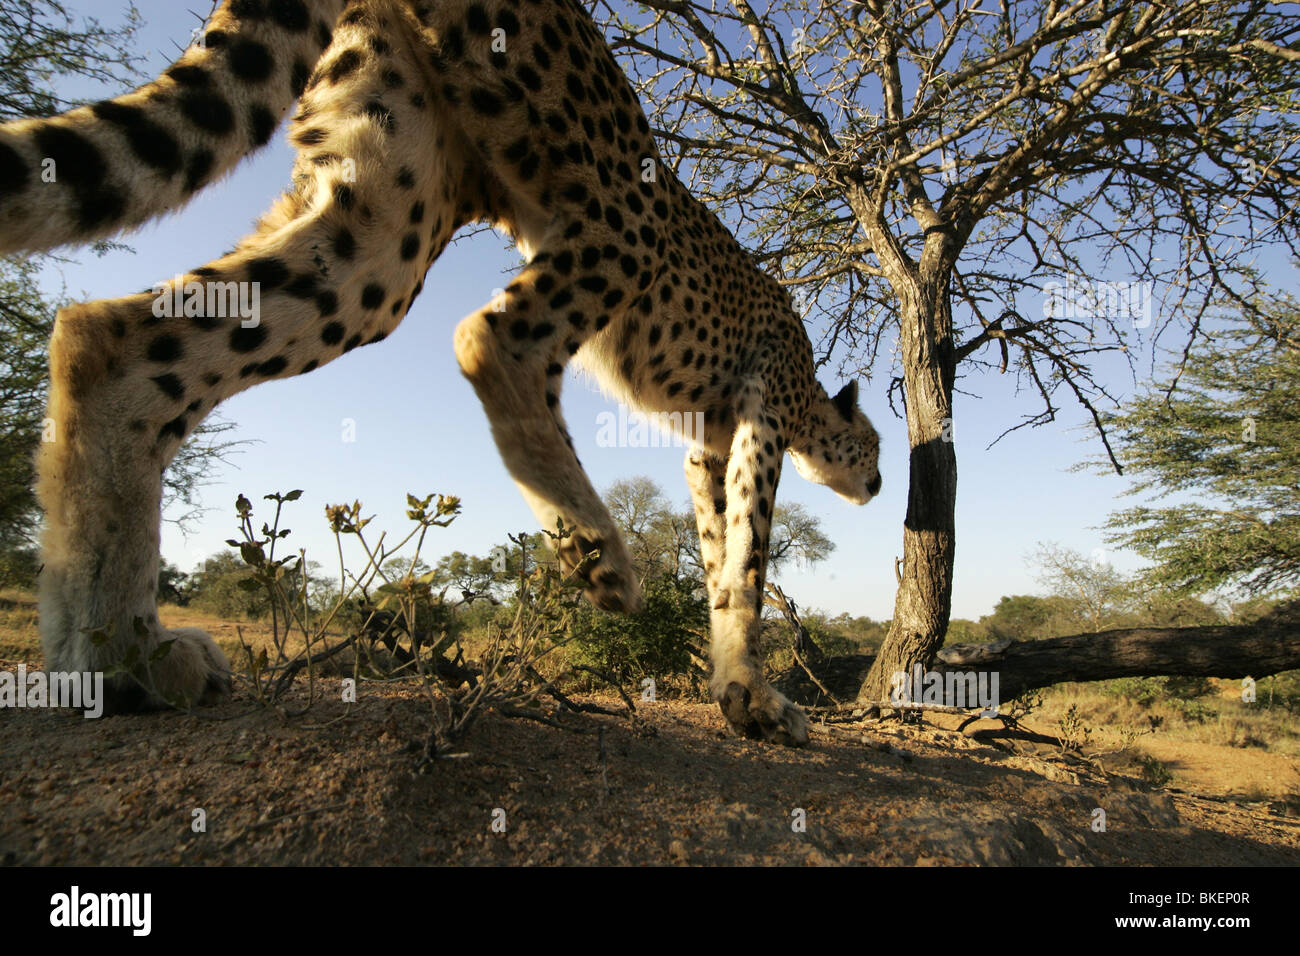 Wide Angle photo of a cheetah stalking - Stock Image